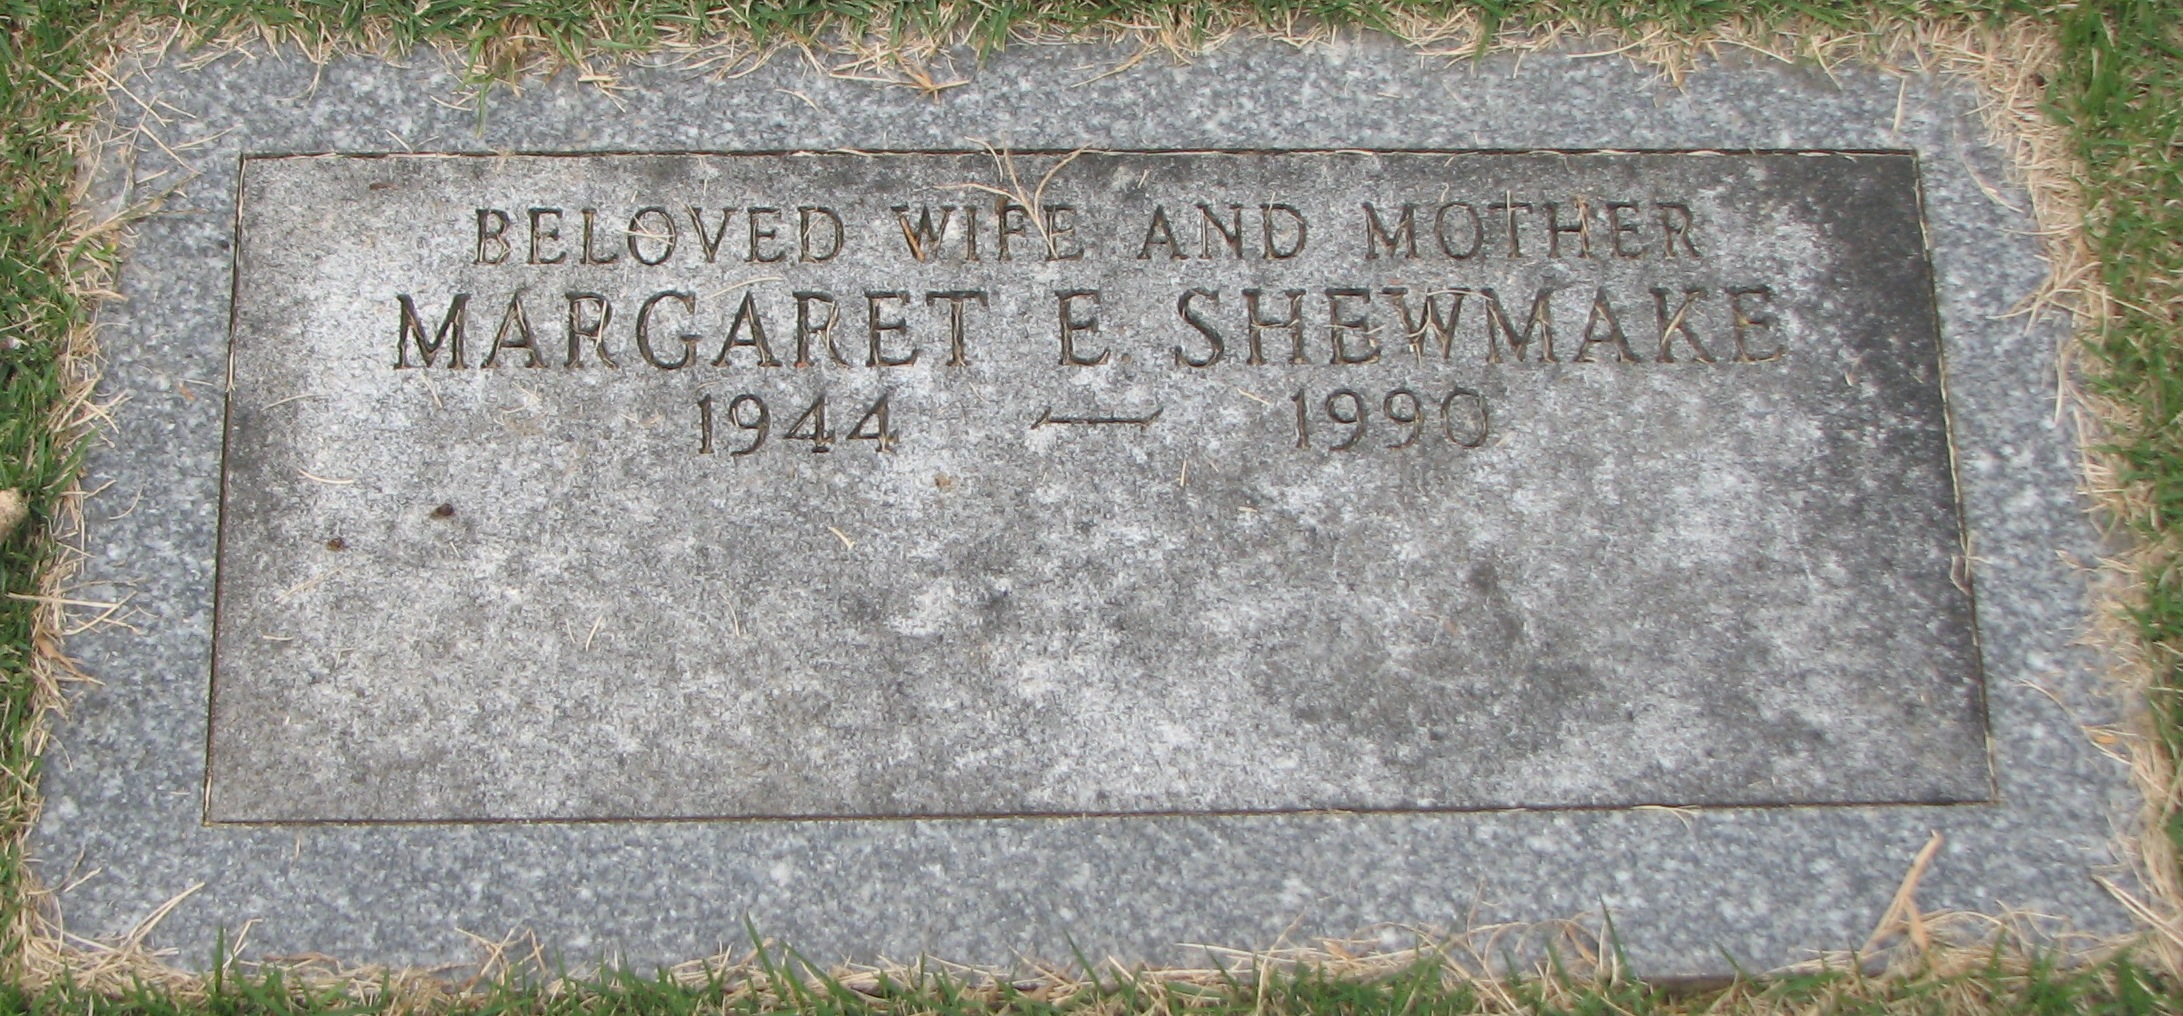 http://image2.findagrave.com/photos/2014/273/136681094_1412202945.jpg